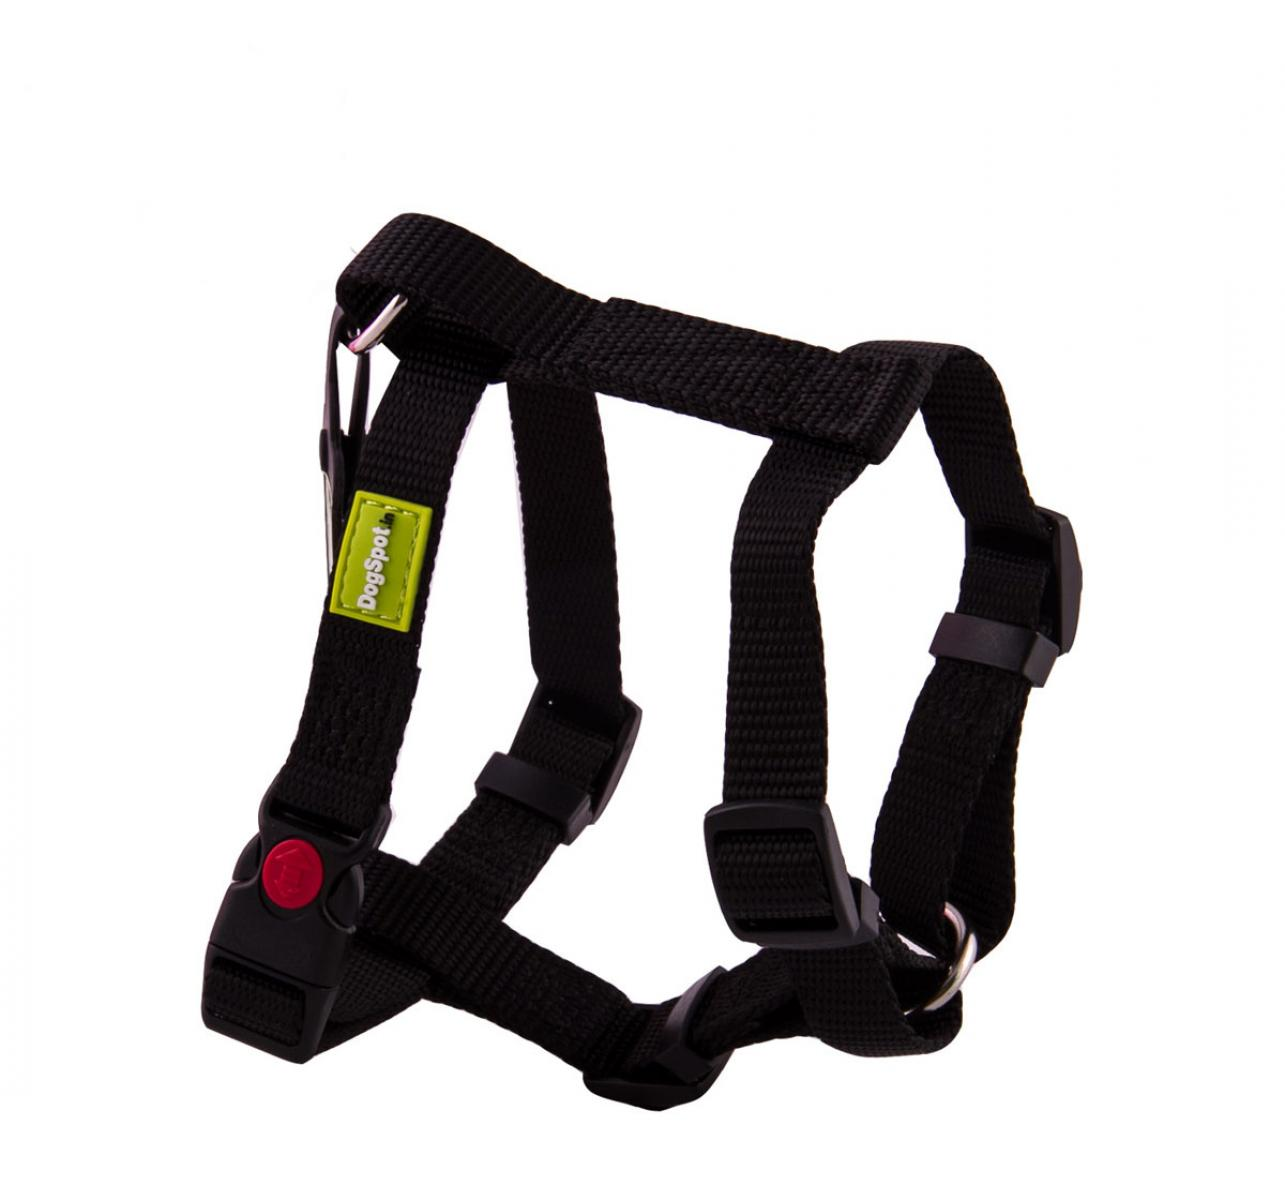 DogSpot Premium Harness Black 15 mm - Small